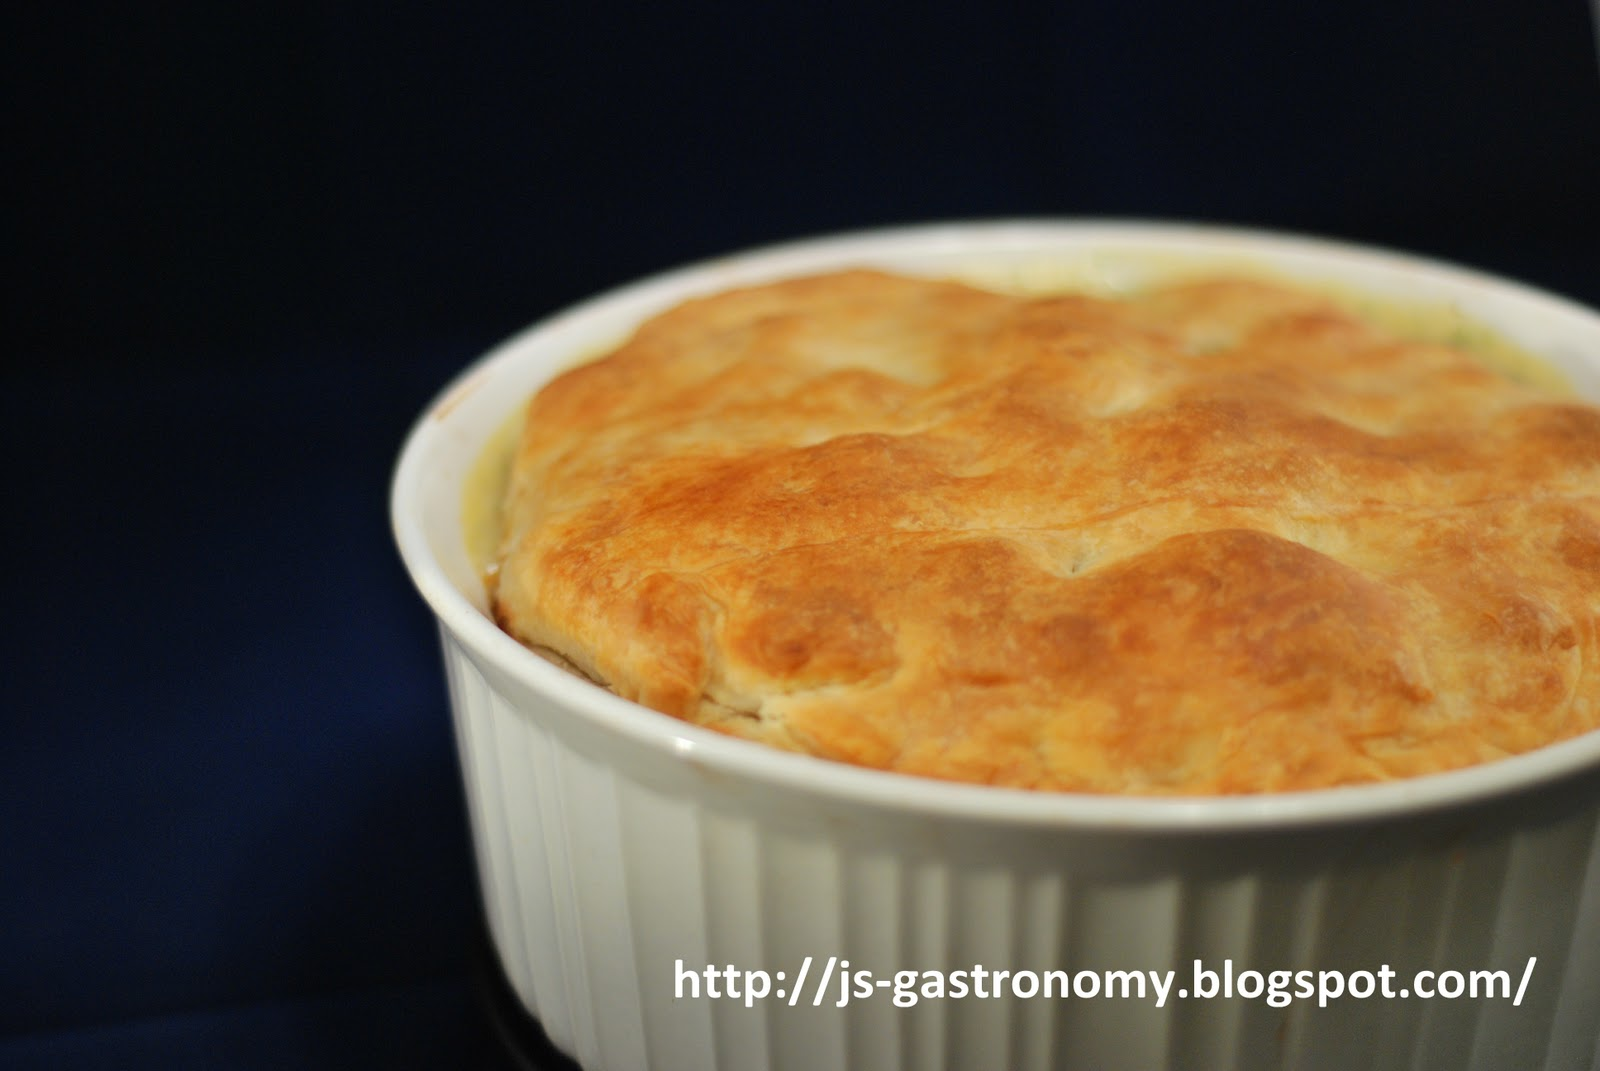 J's Gastronomy: Vegetable Pot Pie